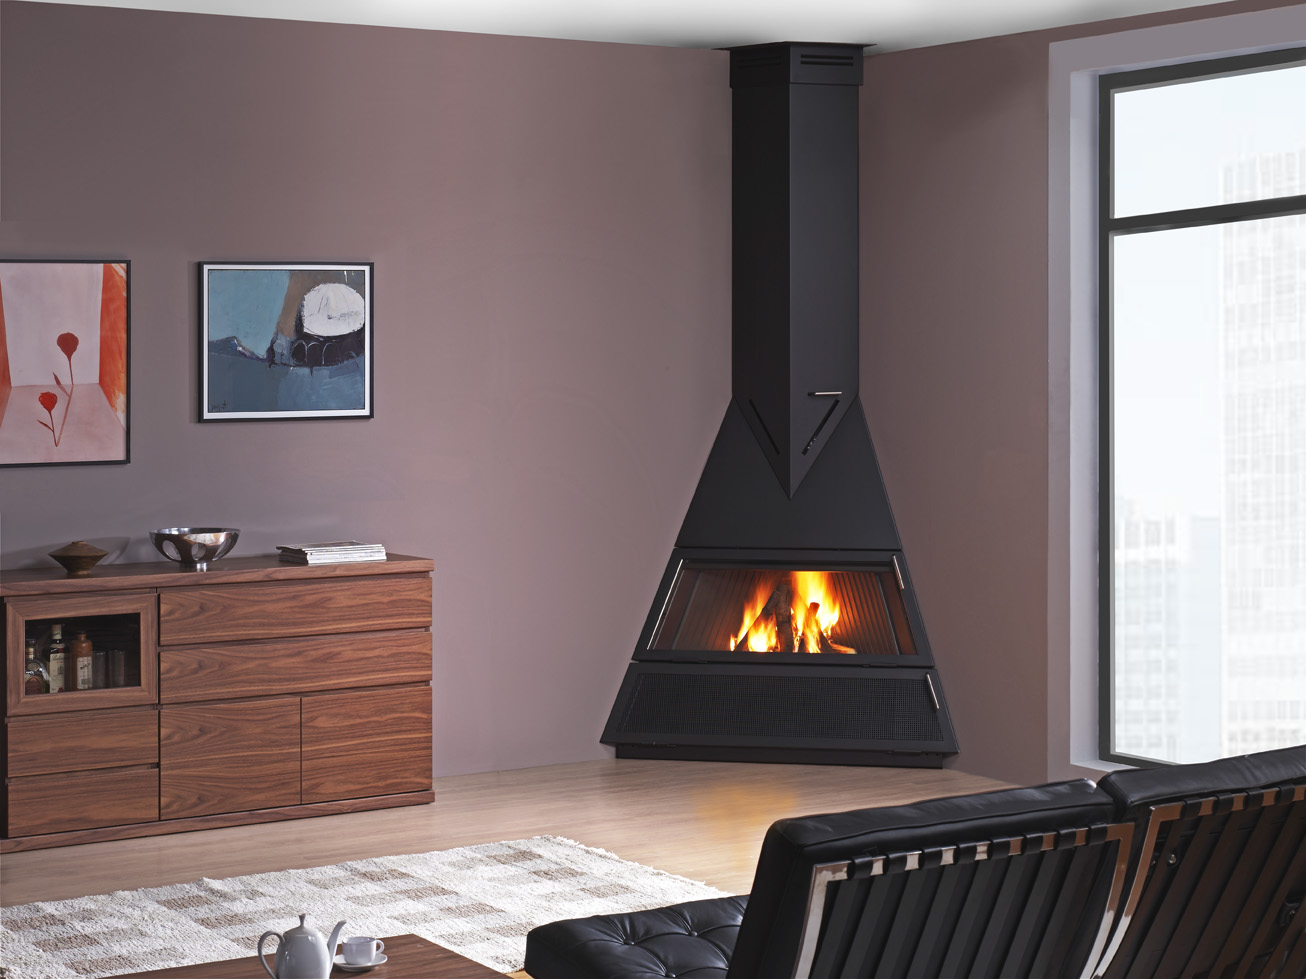 Chimeneas met licas rocal for Chimeneas de obra